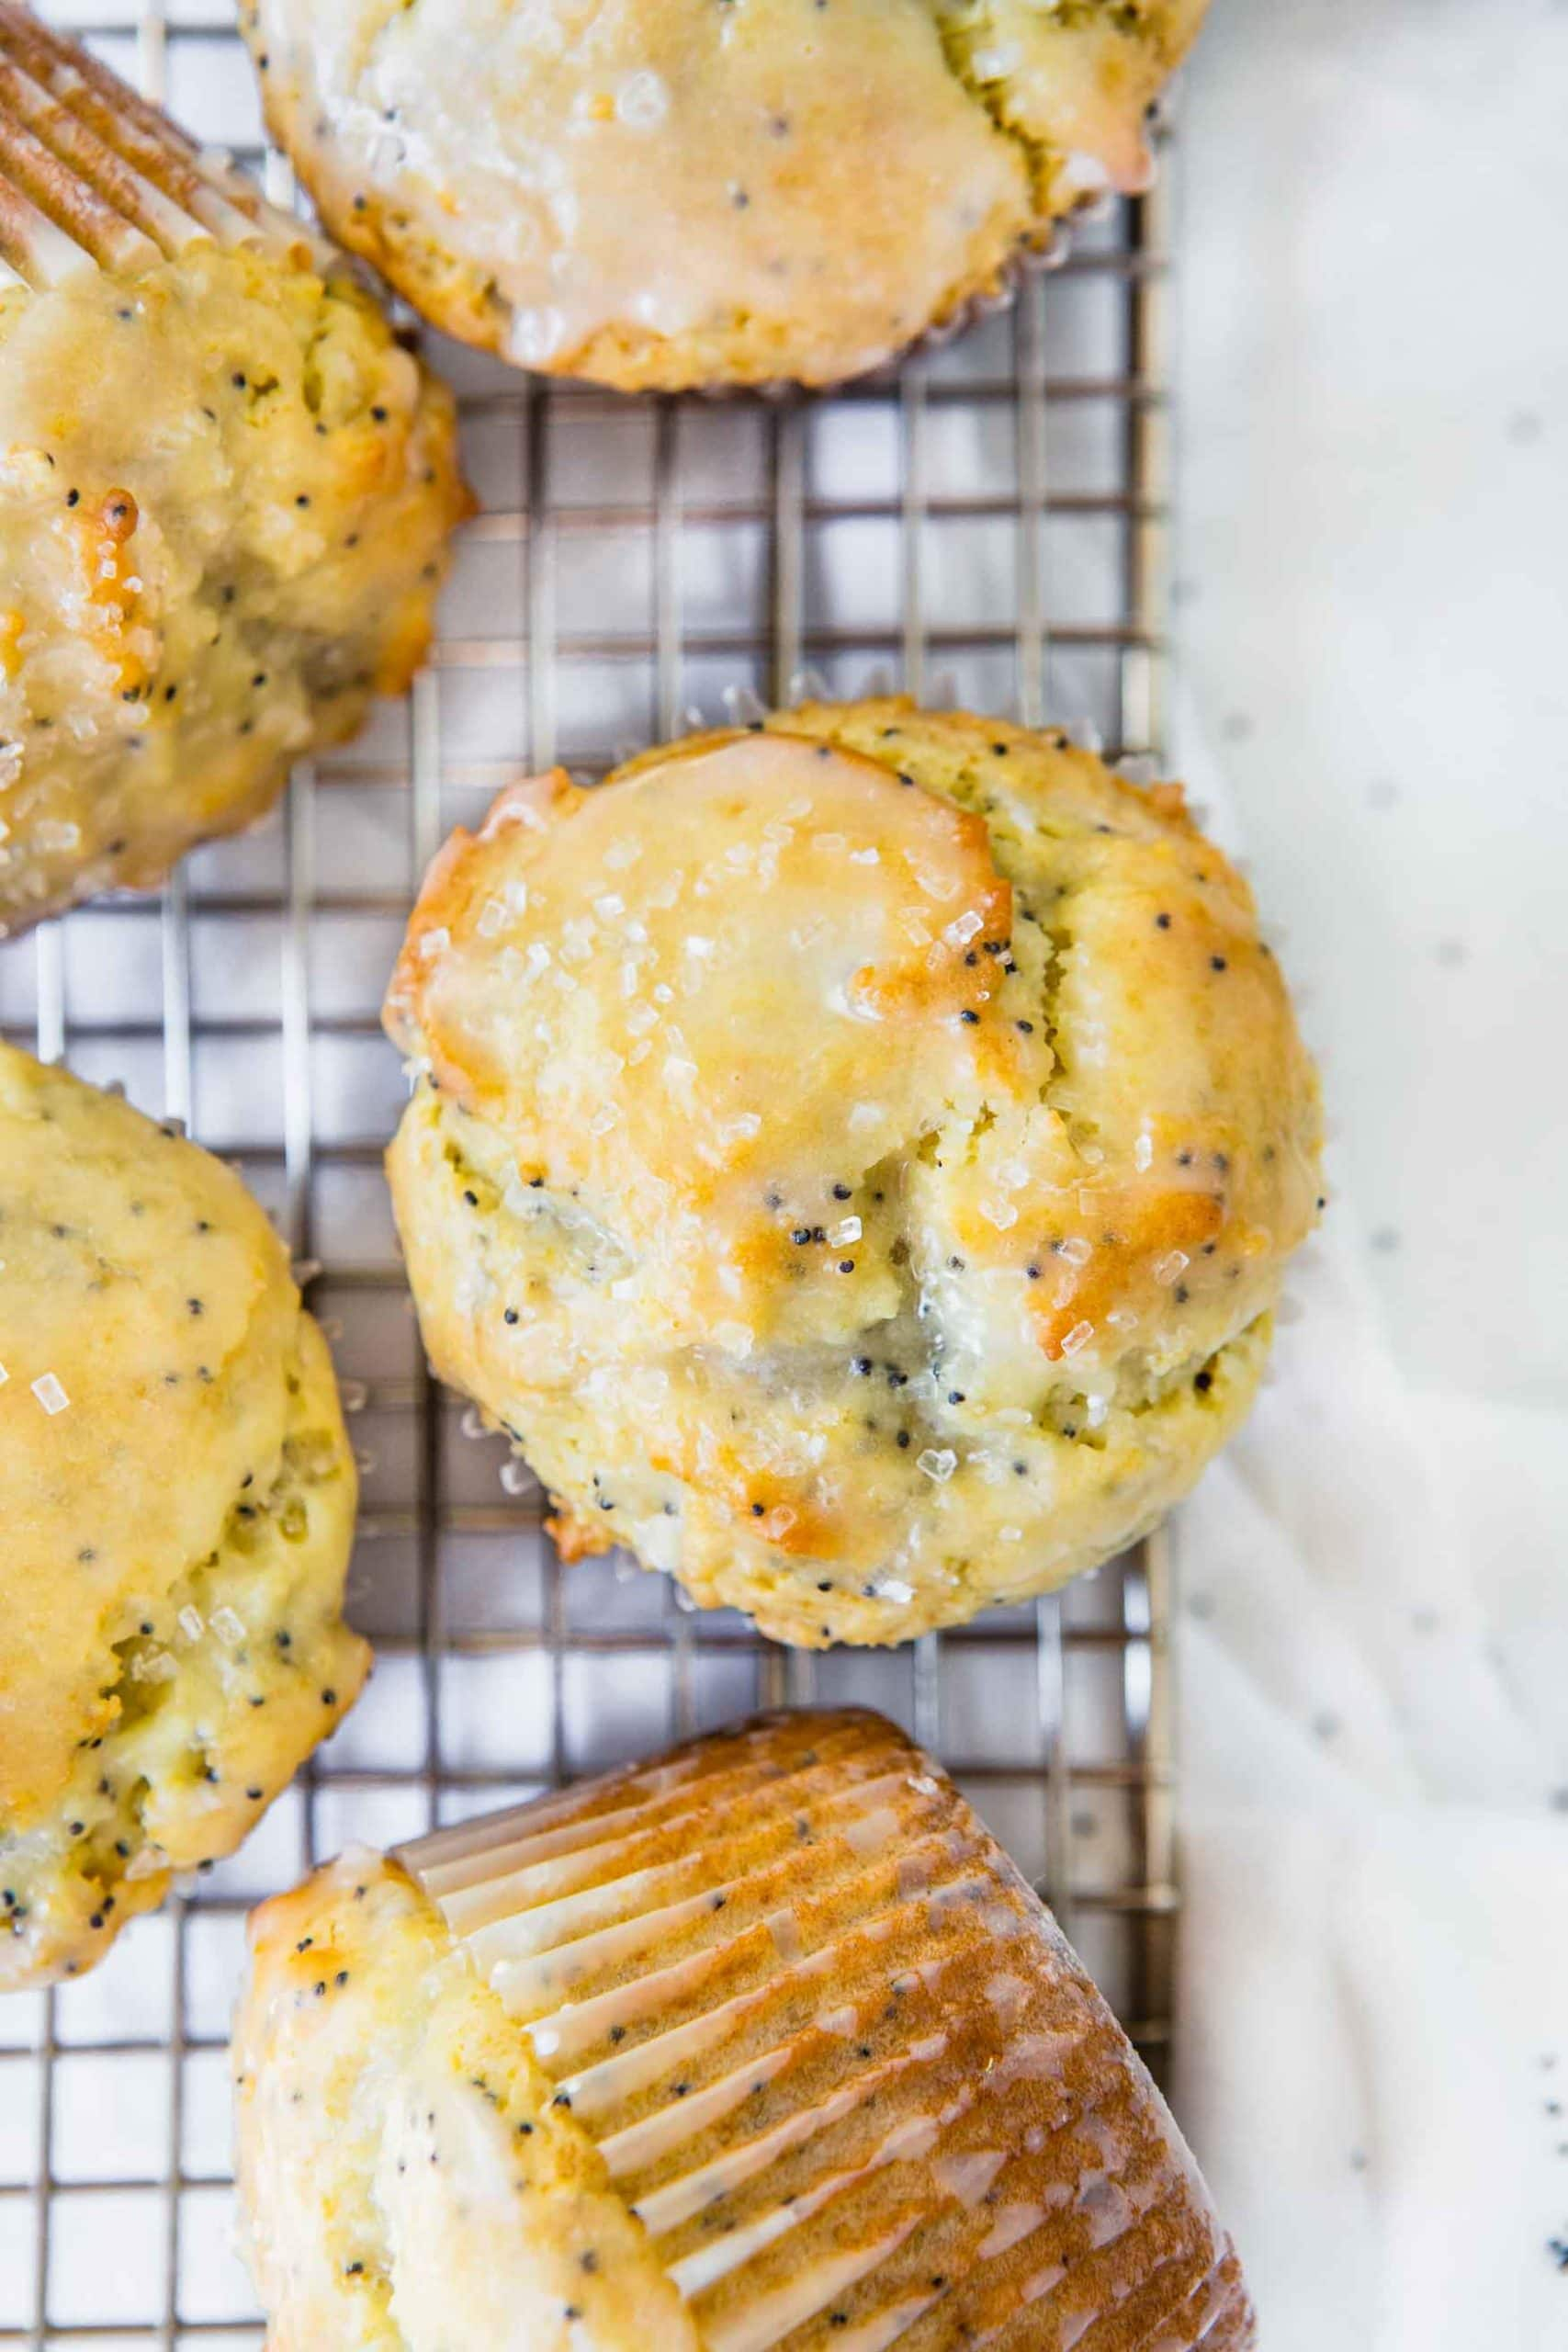 Lemon poppy seed muffins sitting on a wire cooling rack. They have a lemon glaze on top.